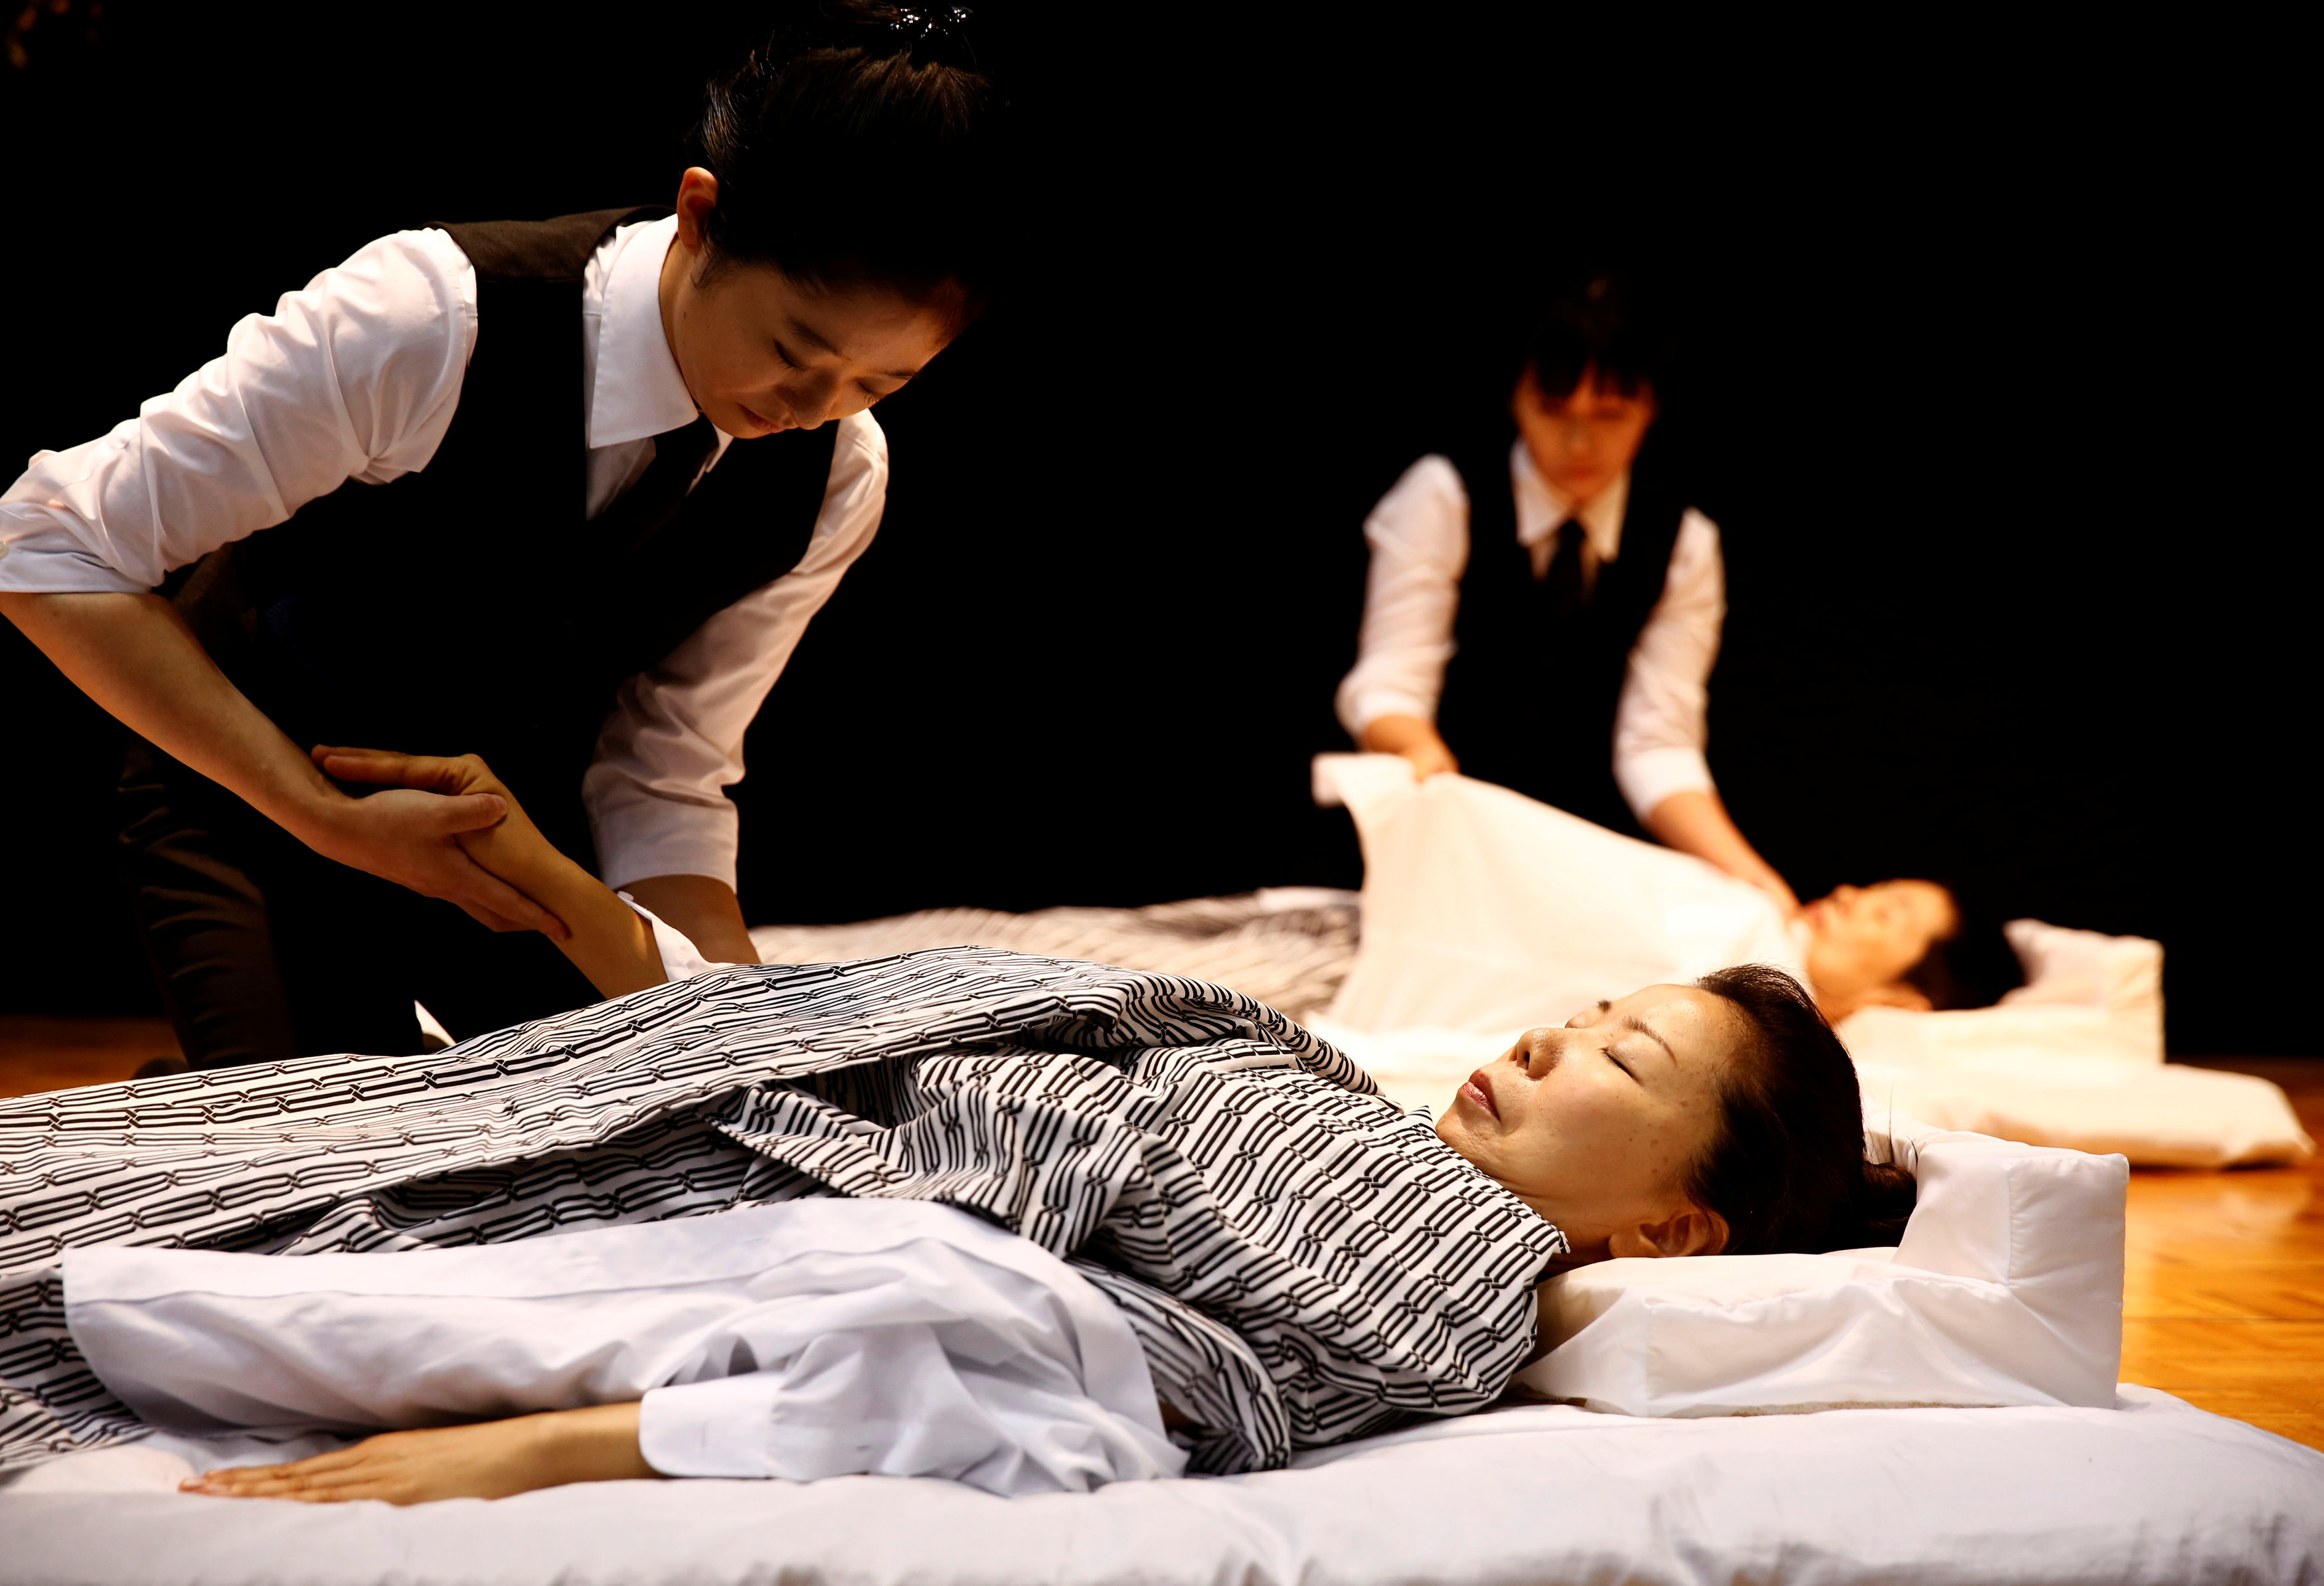 Funeral undertakers change clothes on models during an encoffinment competition at Life Ending Industry EXPO 2017 in Tokyo, Japan August 24, 2017 REUTERS/Kim Kyung-Hoon